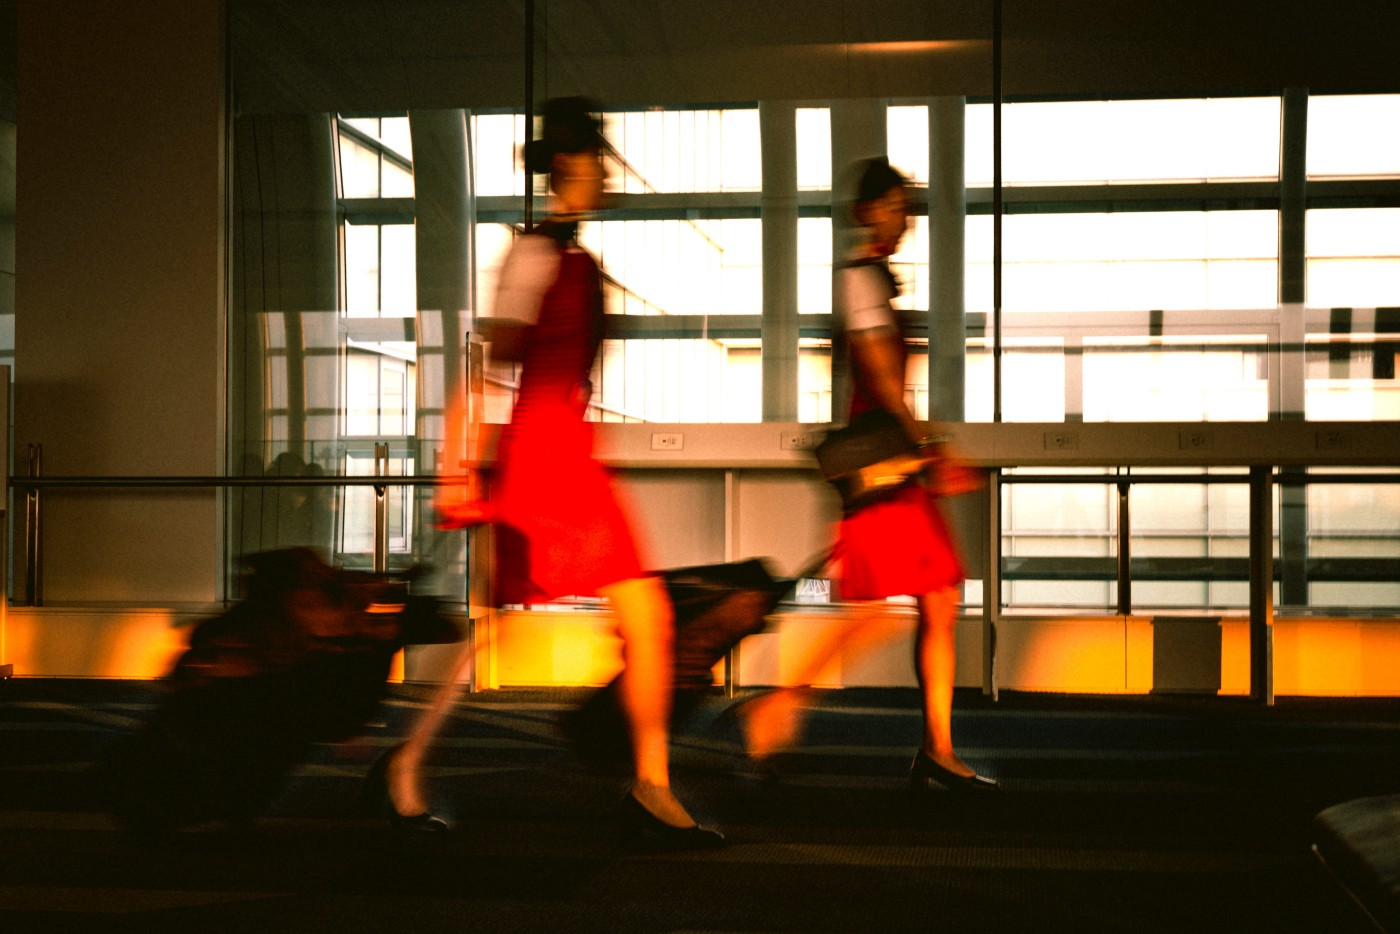 Two flight attendants rush to their next destination